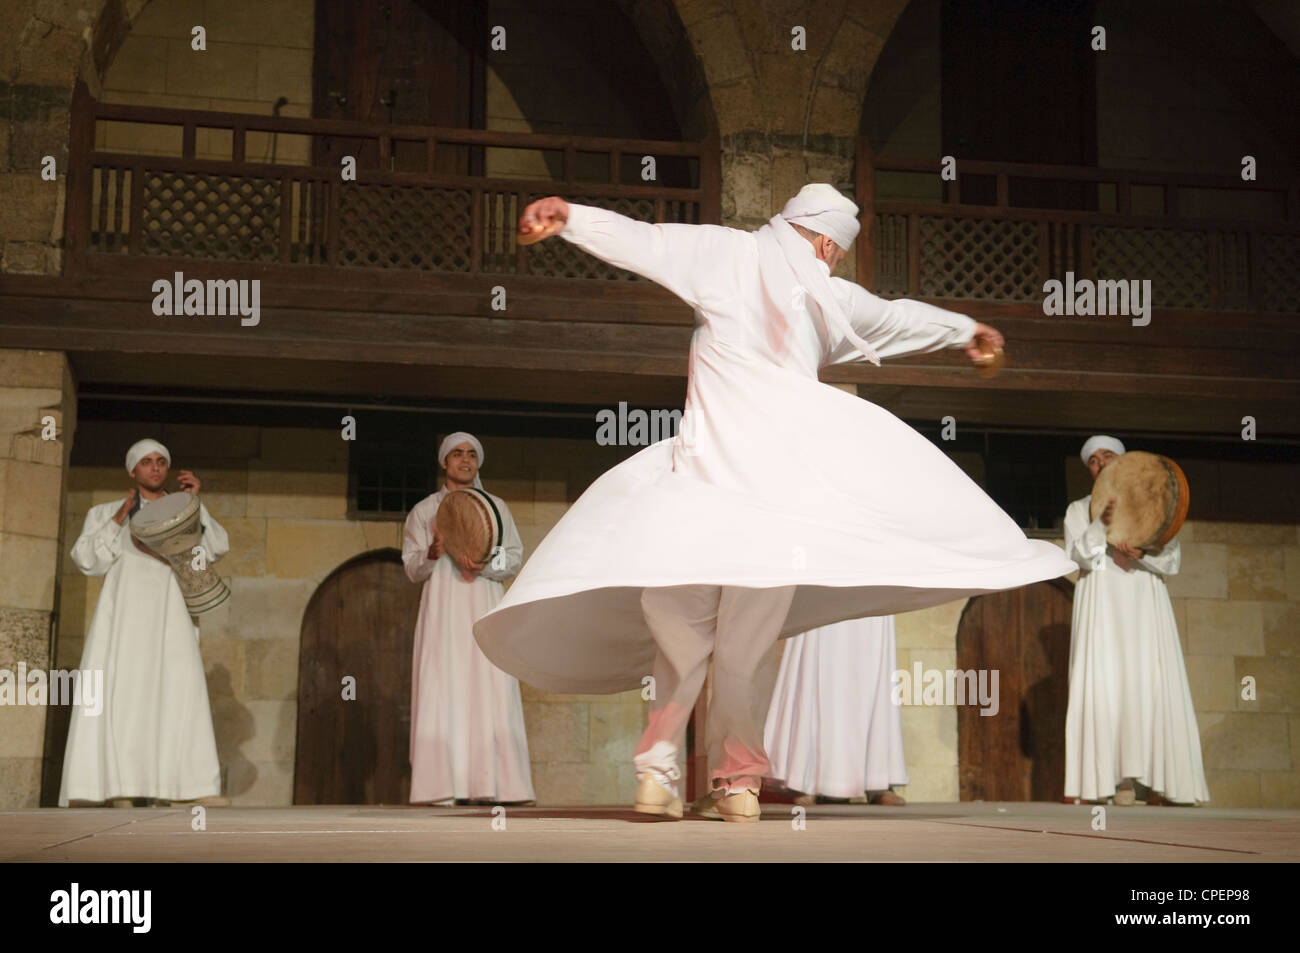 whirling dervish Sufi dancer in motion at performace in Cairo Egypt - Stock Image